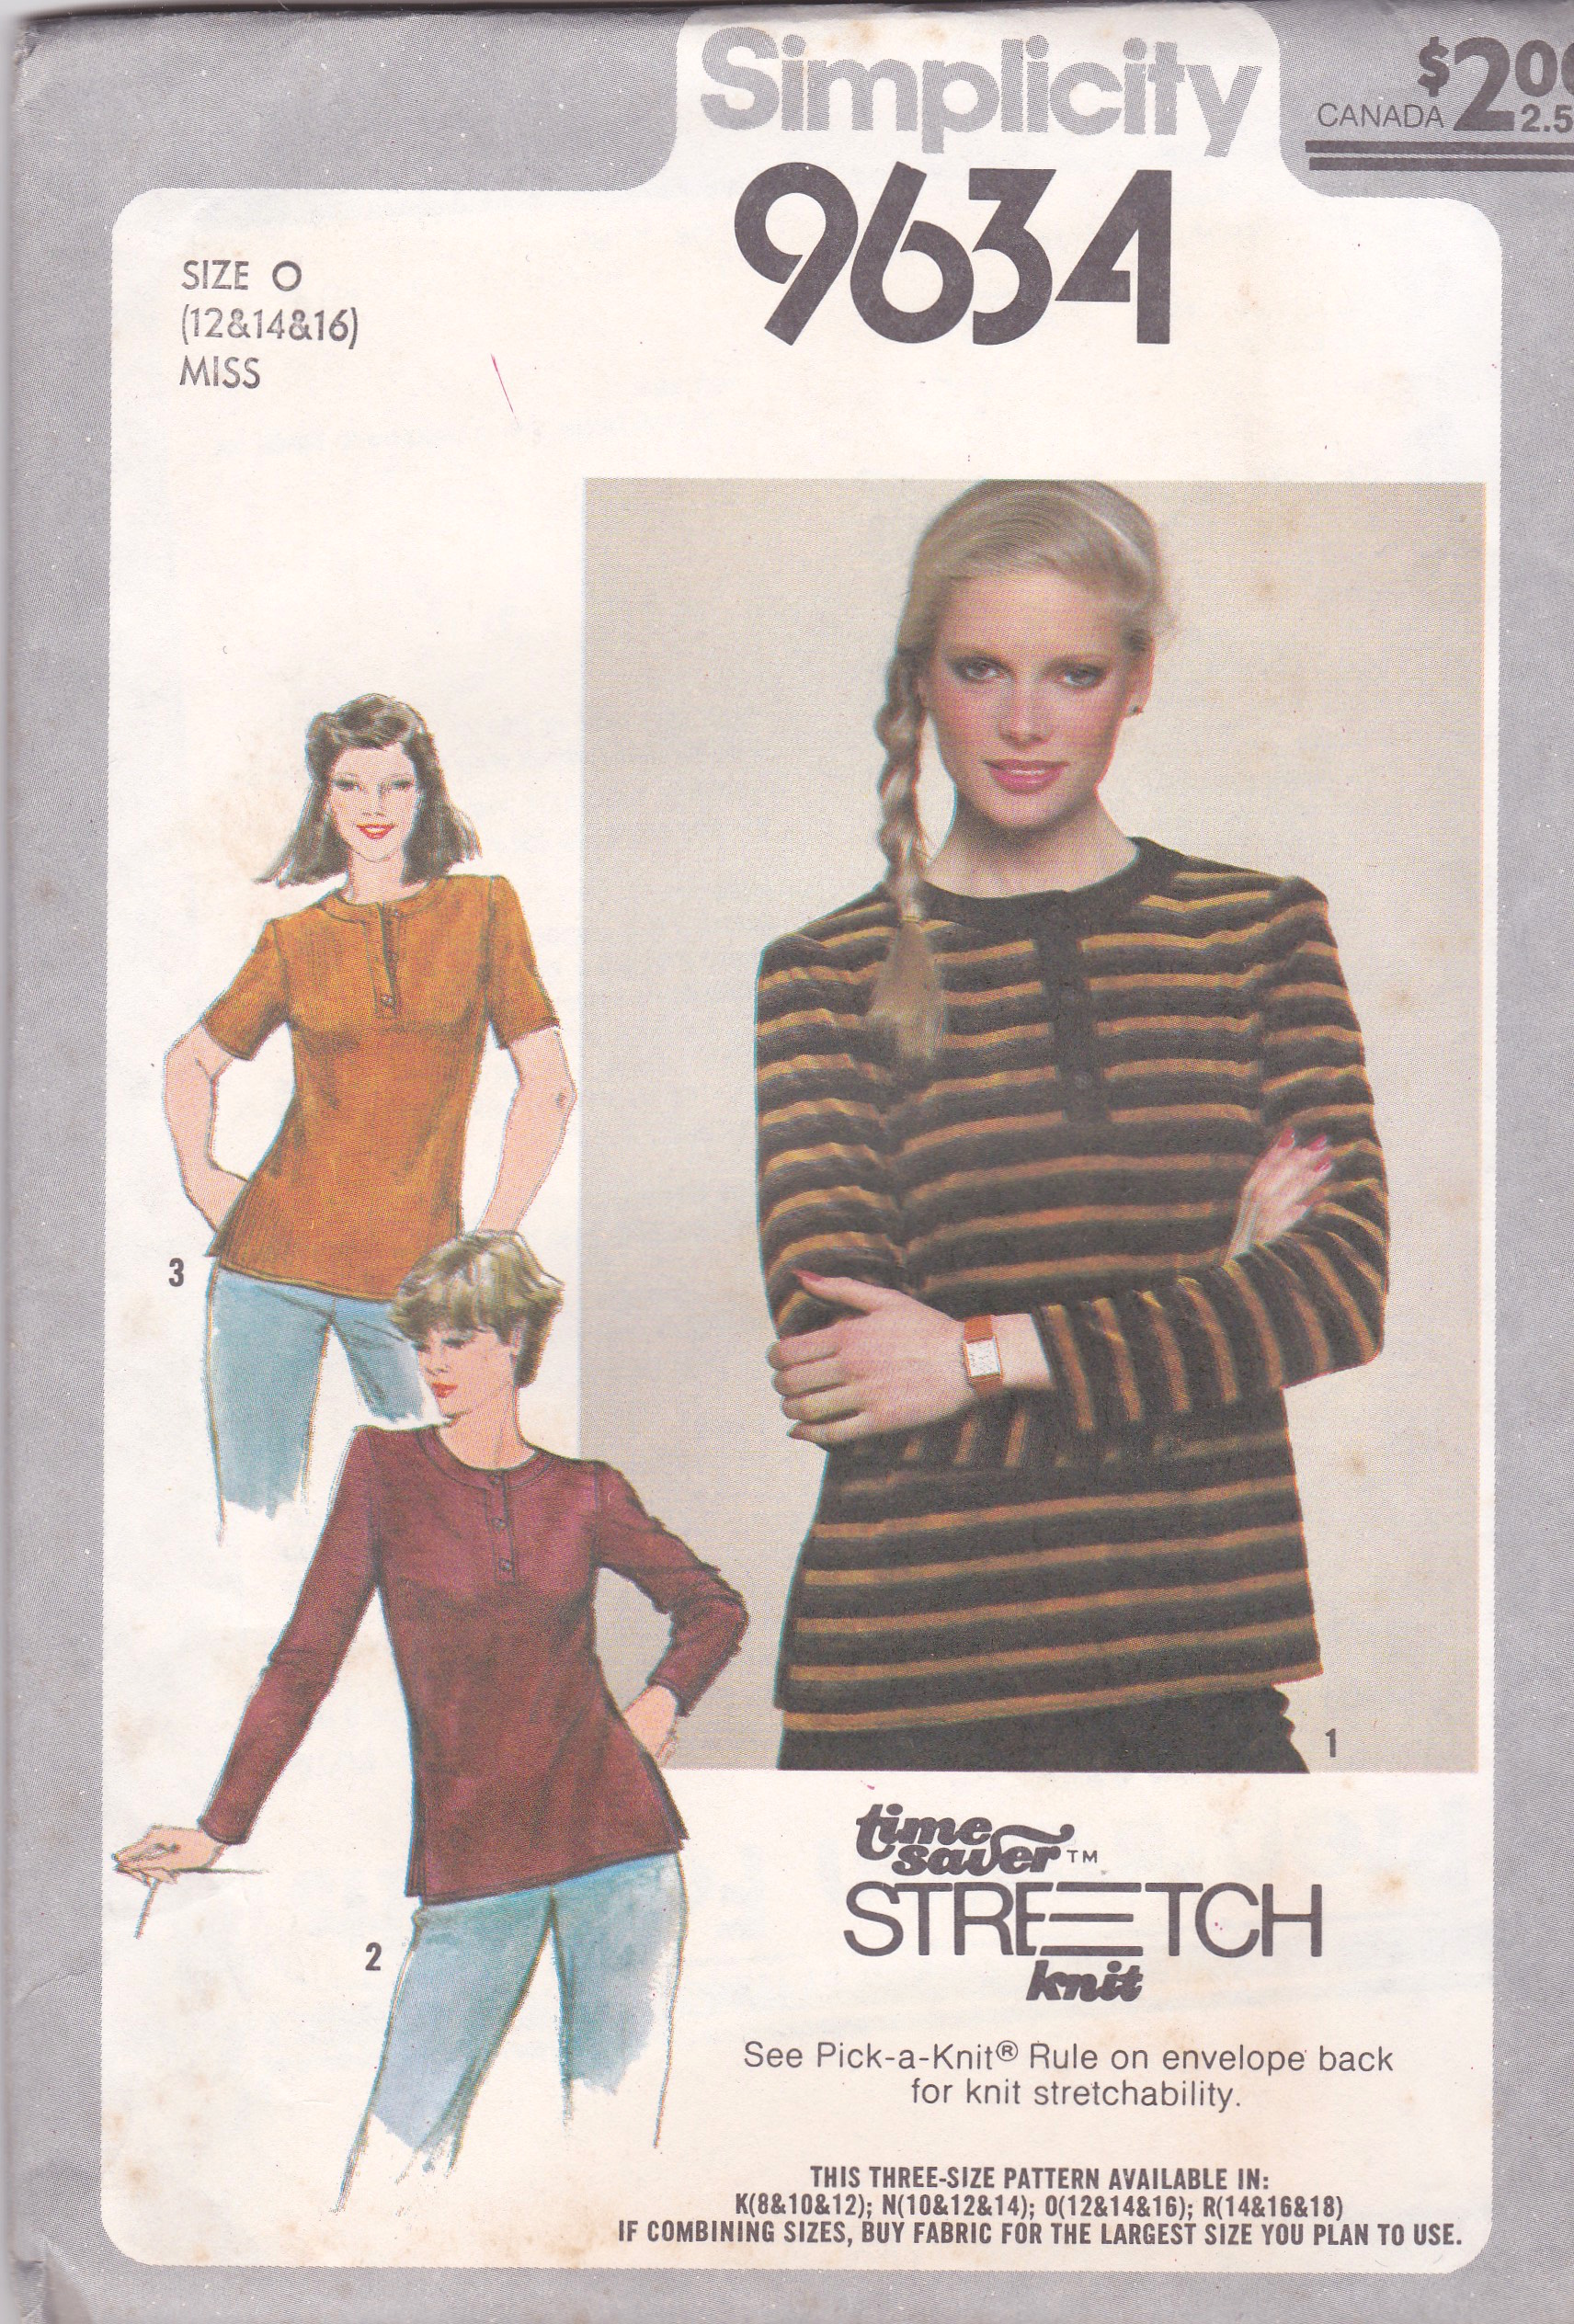 838c0505985 Simplicity 9634  ©1980  Misses  Pullover Top ... A Time-Saver Stretch-Knit  Pattern  Button front top with front and back bands has top-stitched side  slits.